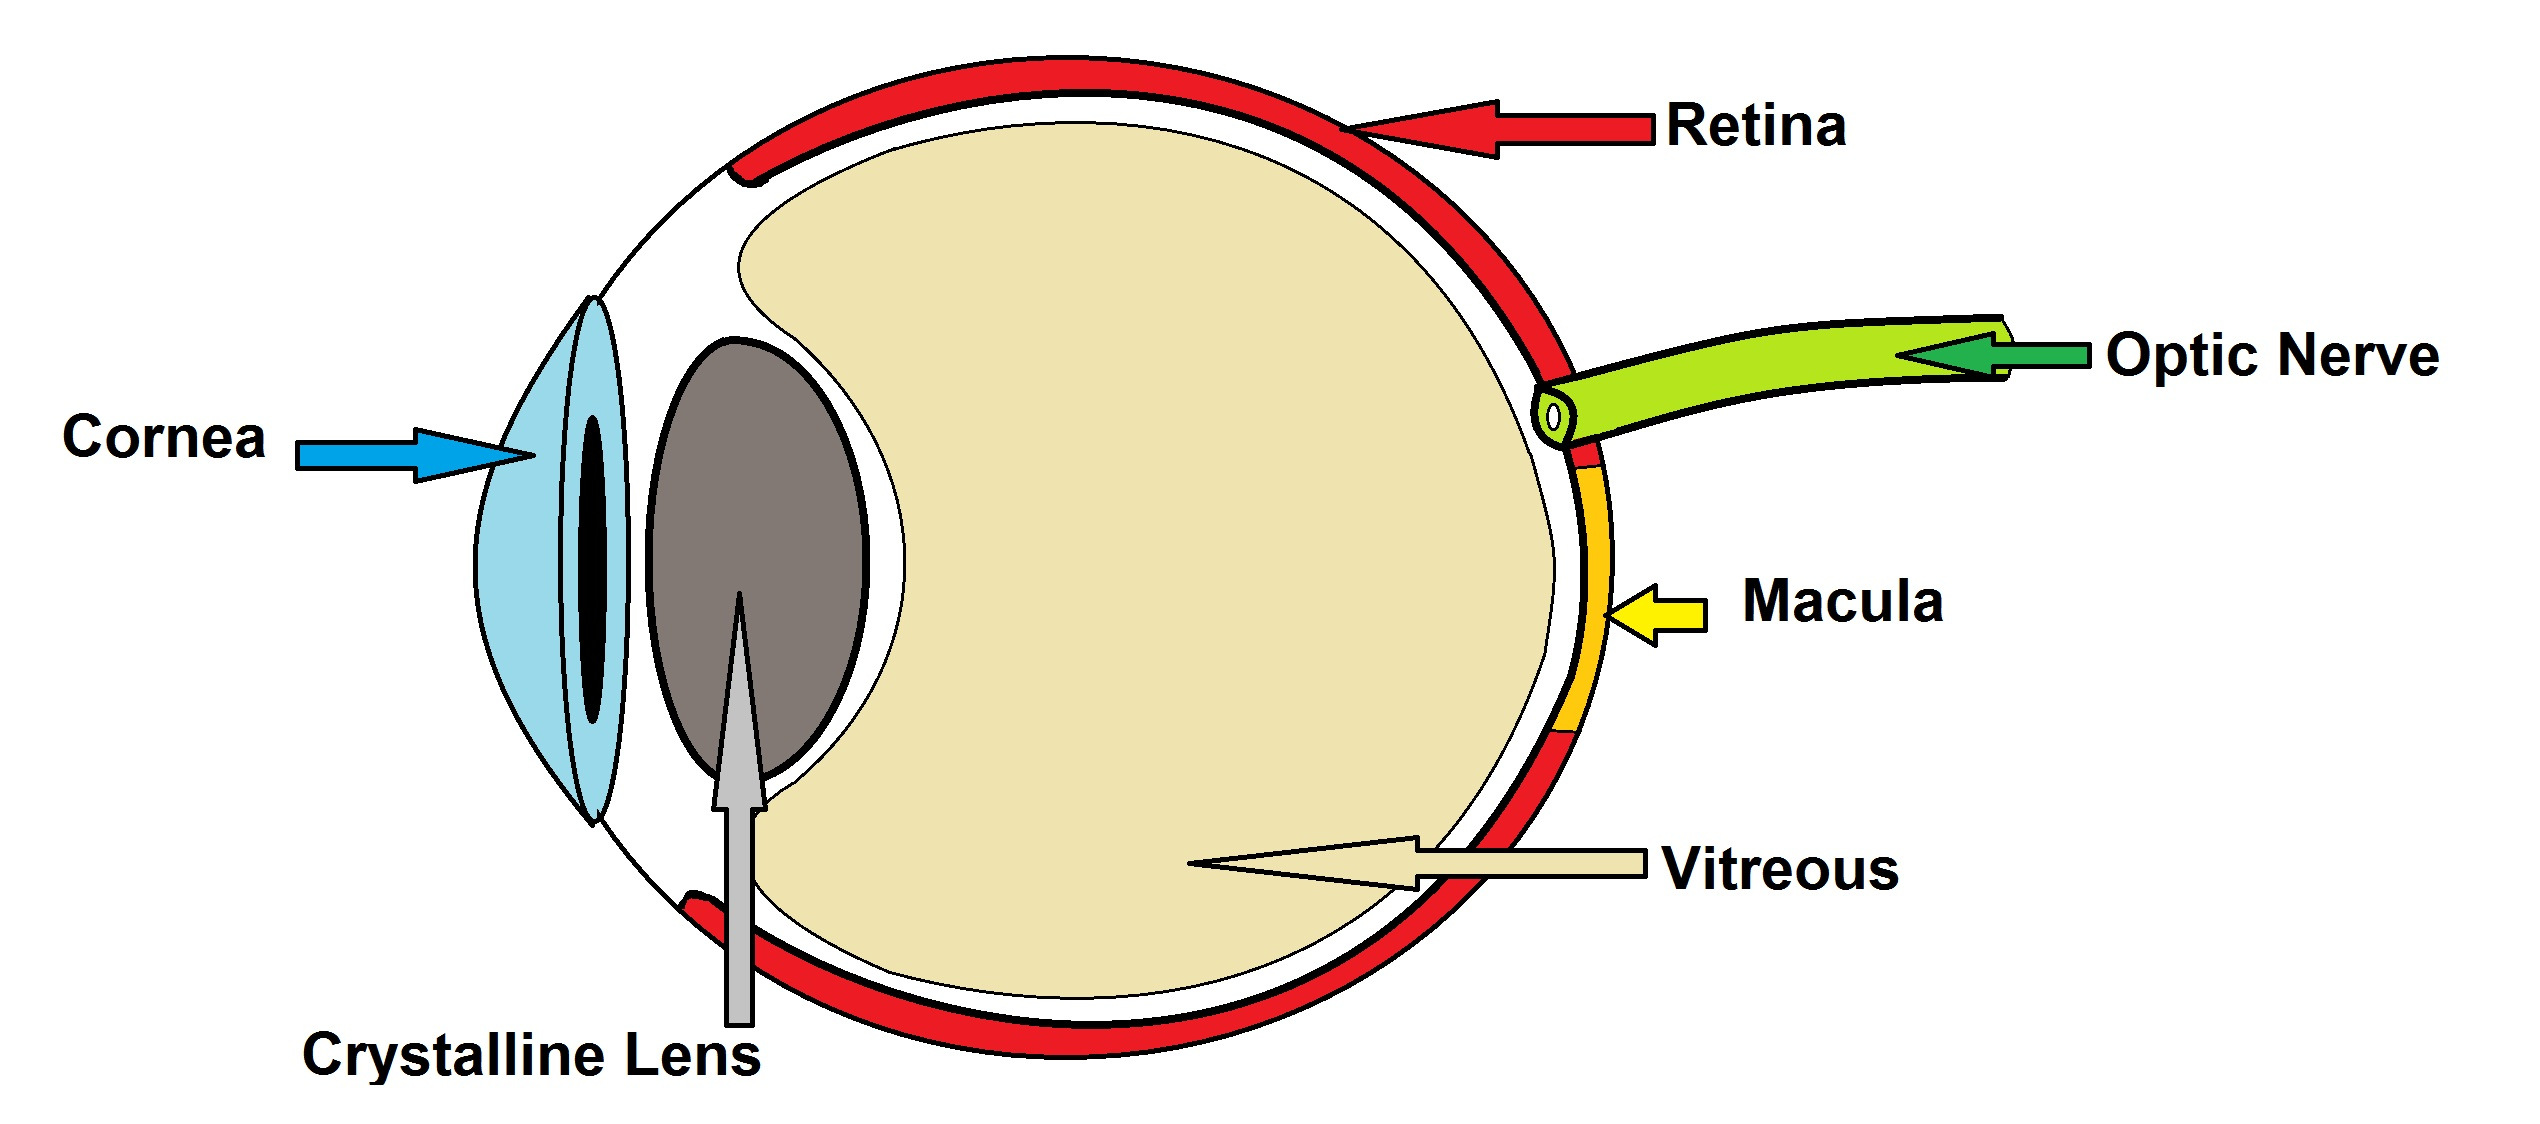 Dr petros aristodemou there is a large cavity in the central portion of the eye which is occupied by a transparent gel called the vitreous the optic nerve takes the signal from ccuart Choice Image